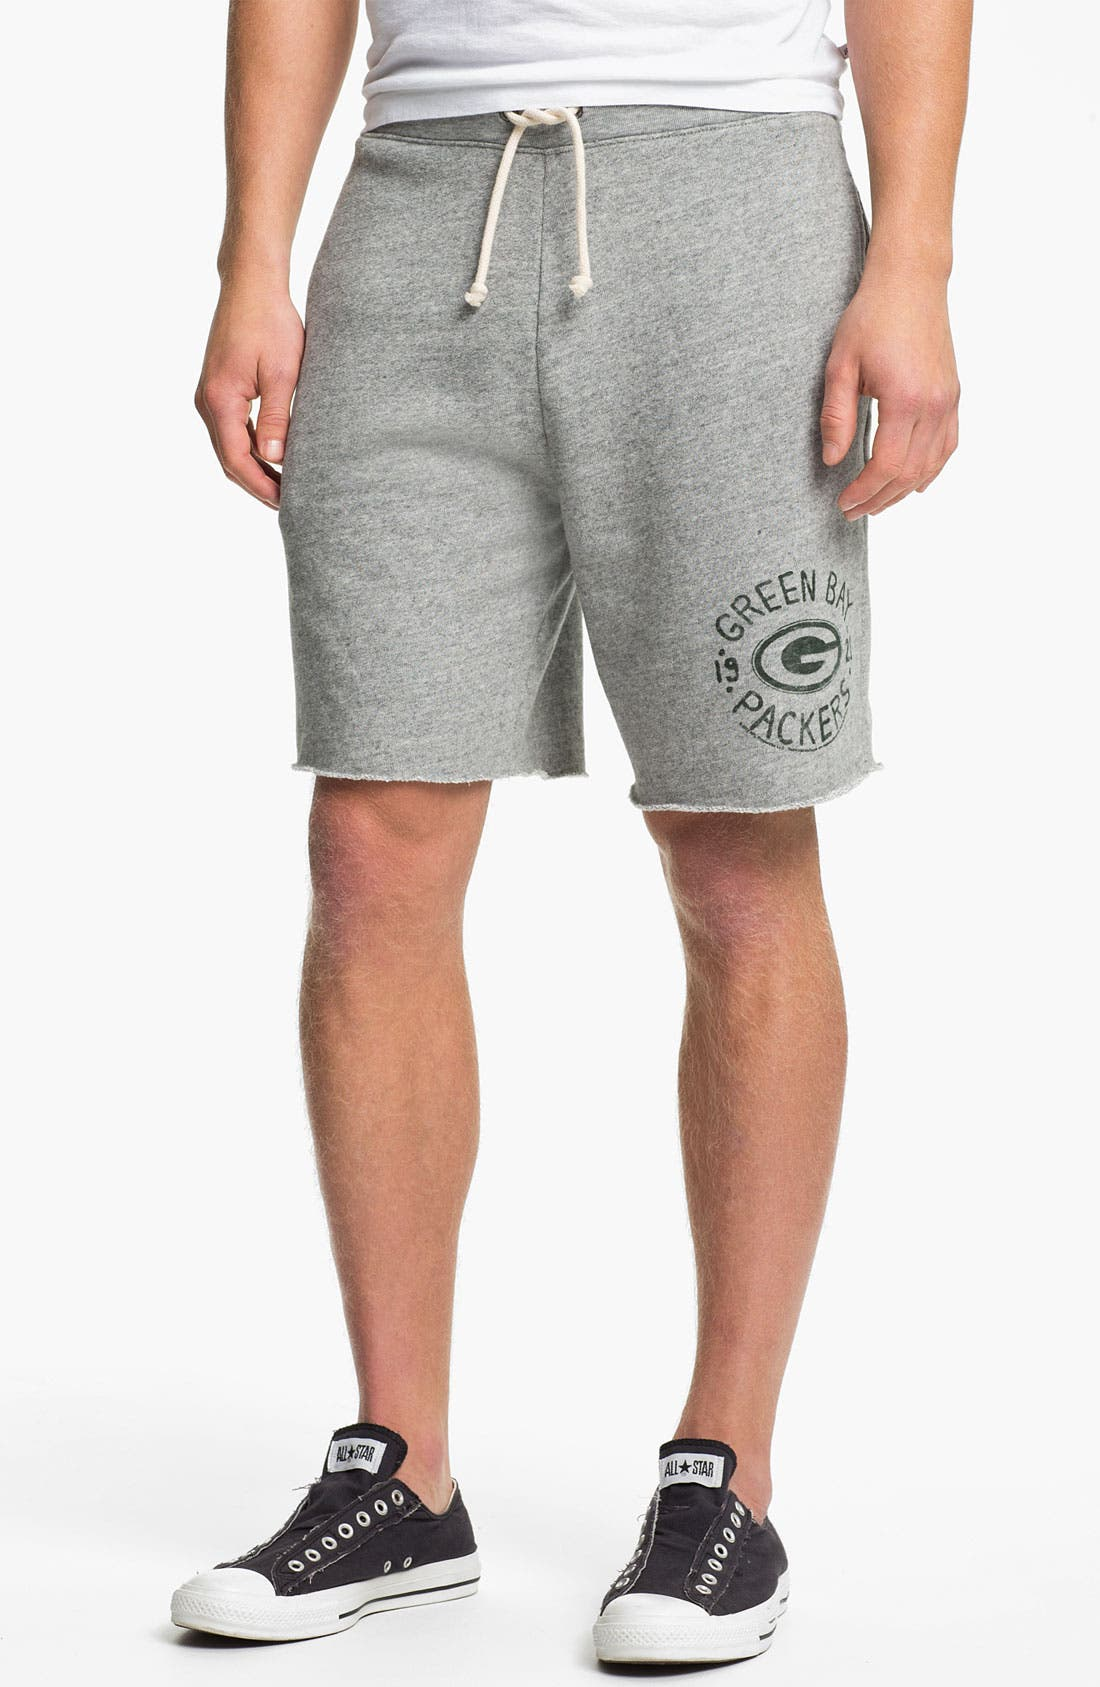 Alternate Image 1 Selected - Junk Food 'Green Bay Packers' Athletic Shorts